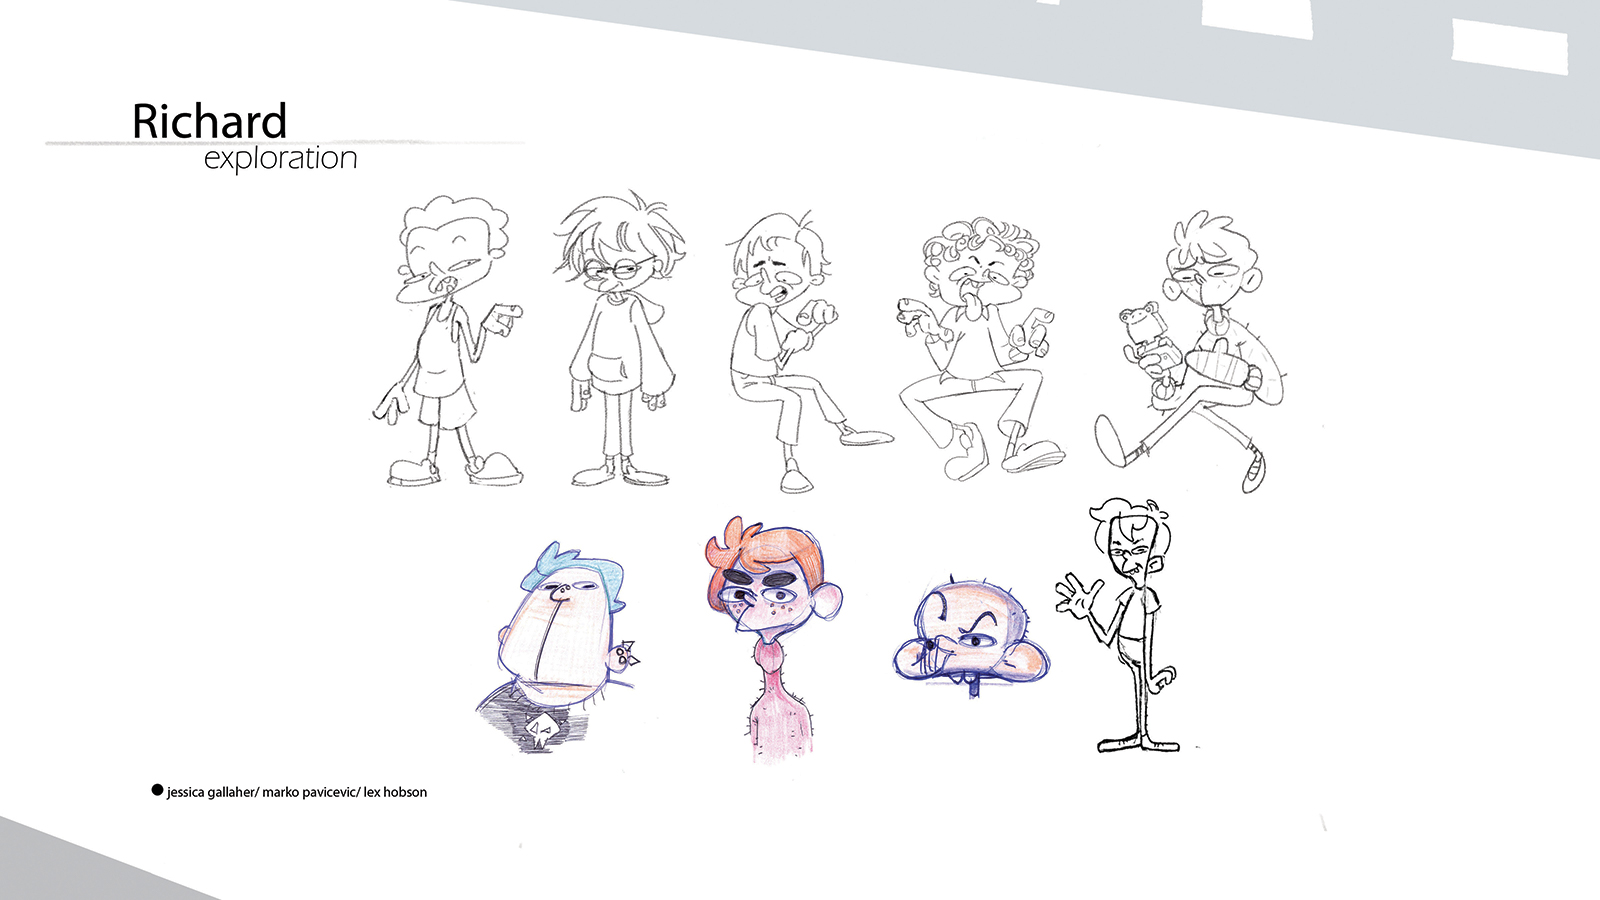 Concepts and sketches for Flap character Richard.